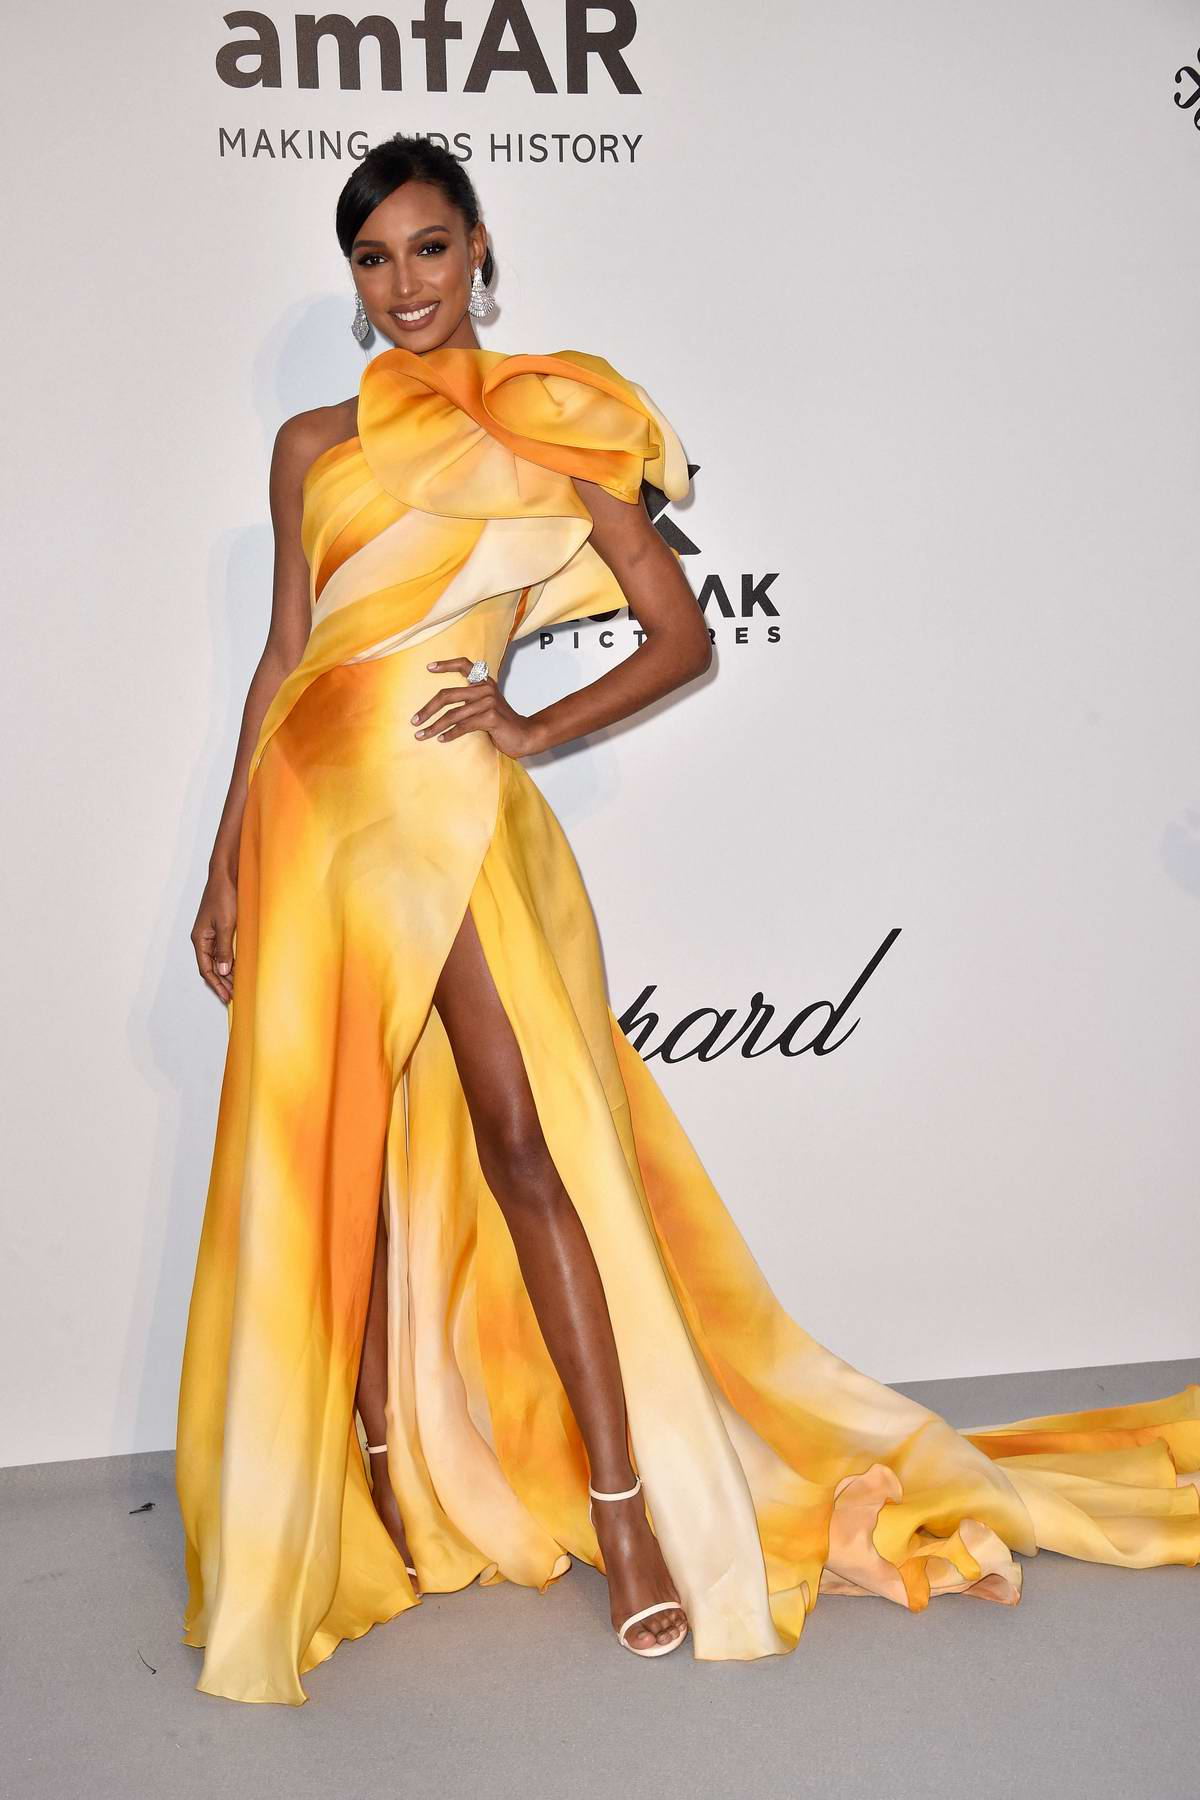 Jasmine Tookes attends the 26th amfAR Gala held at Hotel du Cap-Eden-Roc during the 72nd annual Cannes Film Festival in Cannes, France